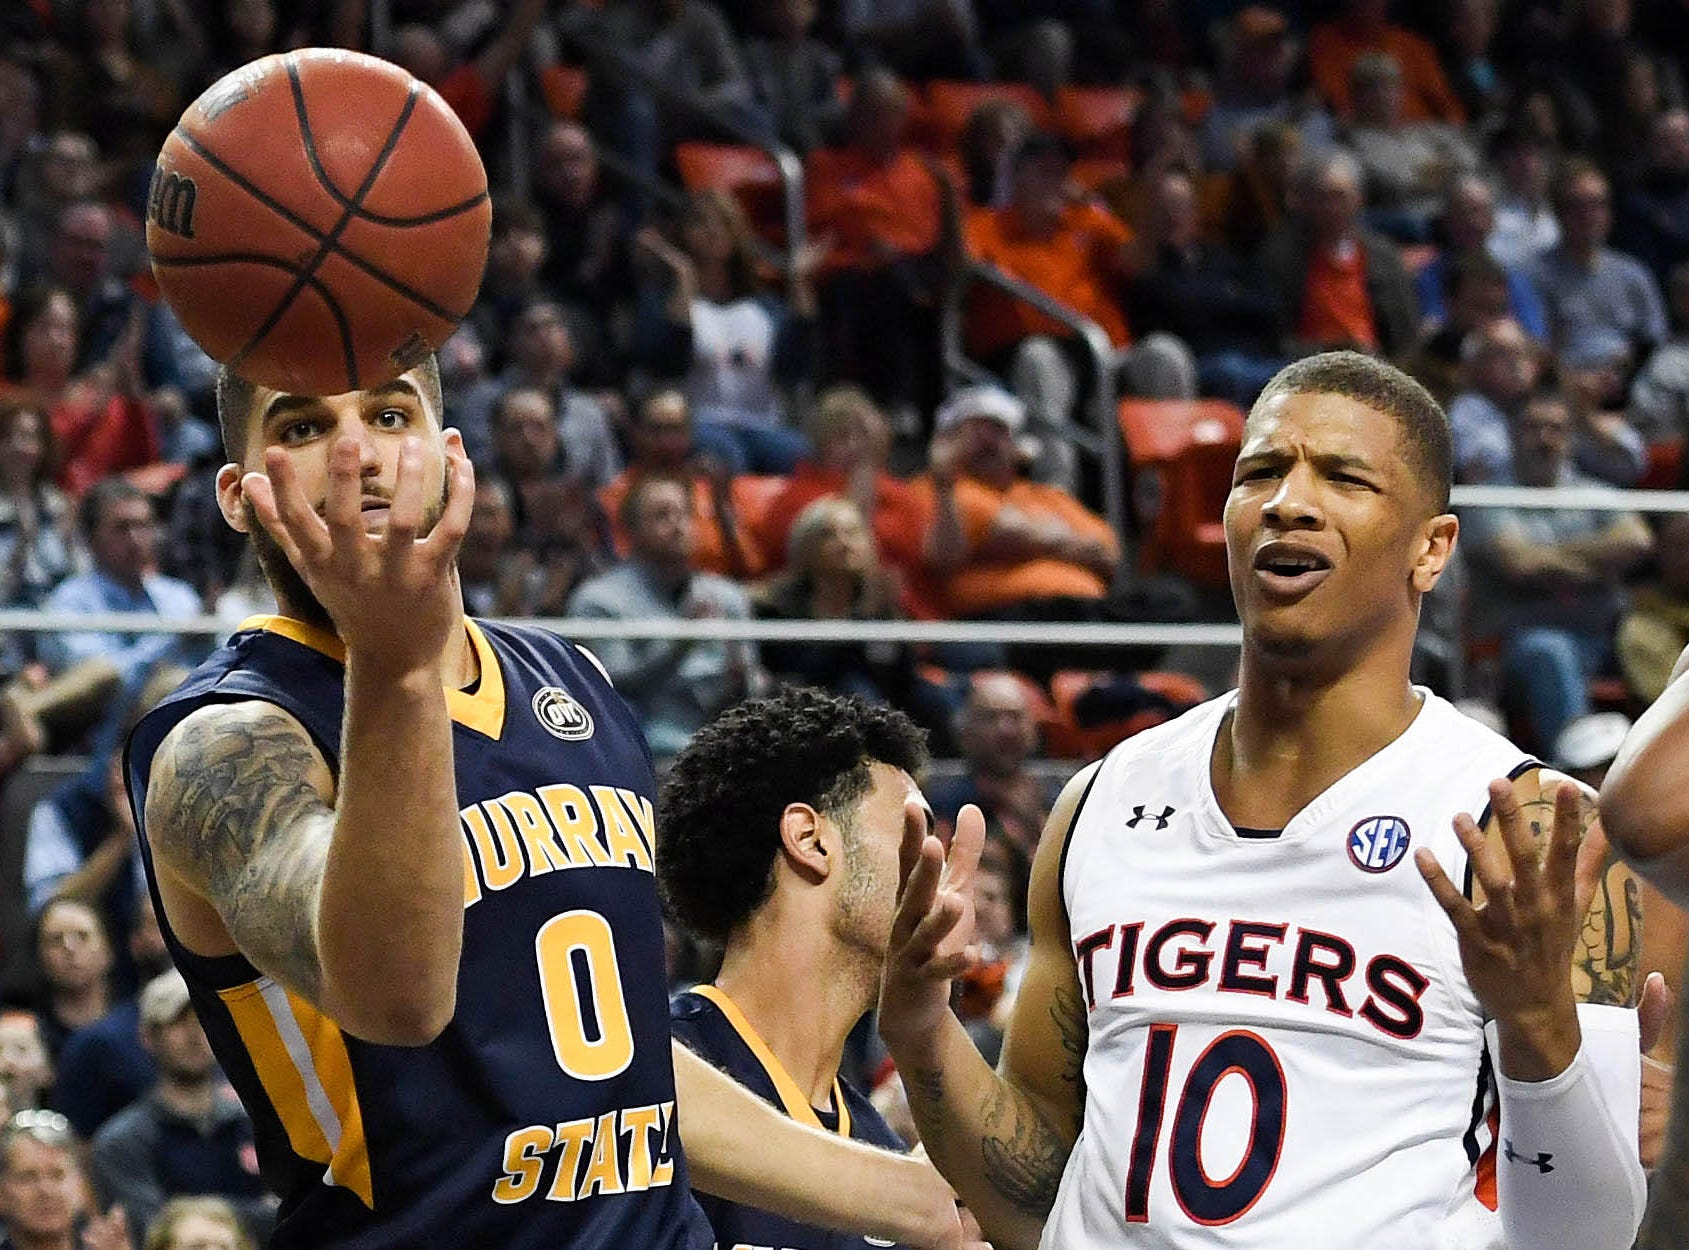 Dec 22, 2018; Auburn, AL, USA; Murray State Racers forward Mike Davis (0) goes for a rebound as Auburn Tigers guard Samir Doughty (10) reacts during the second half at Auburn Arena. Mandatory Credit: Shanna Lockwood-USA TODAY Sports